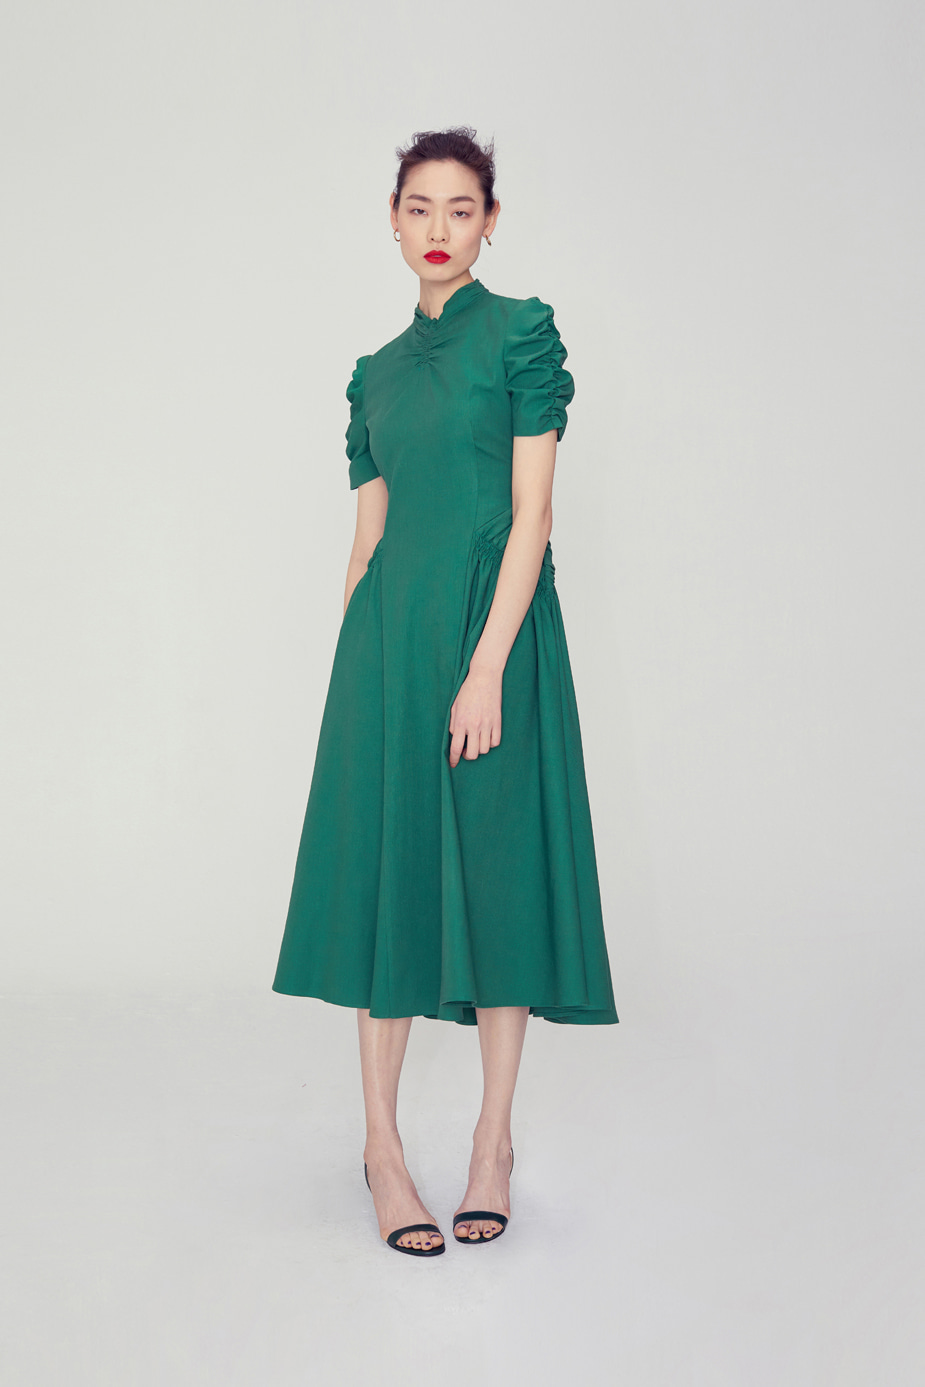 Luna Shirring Dress(GREEN)